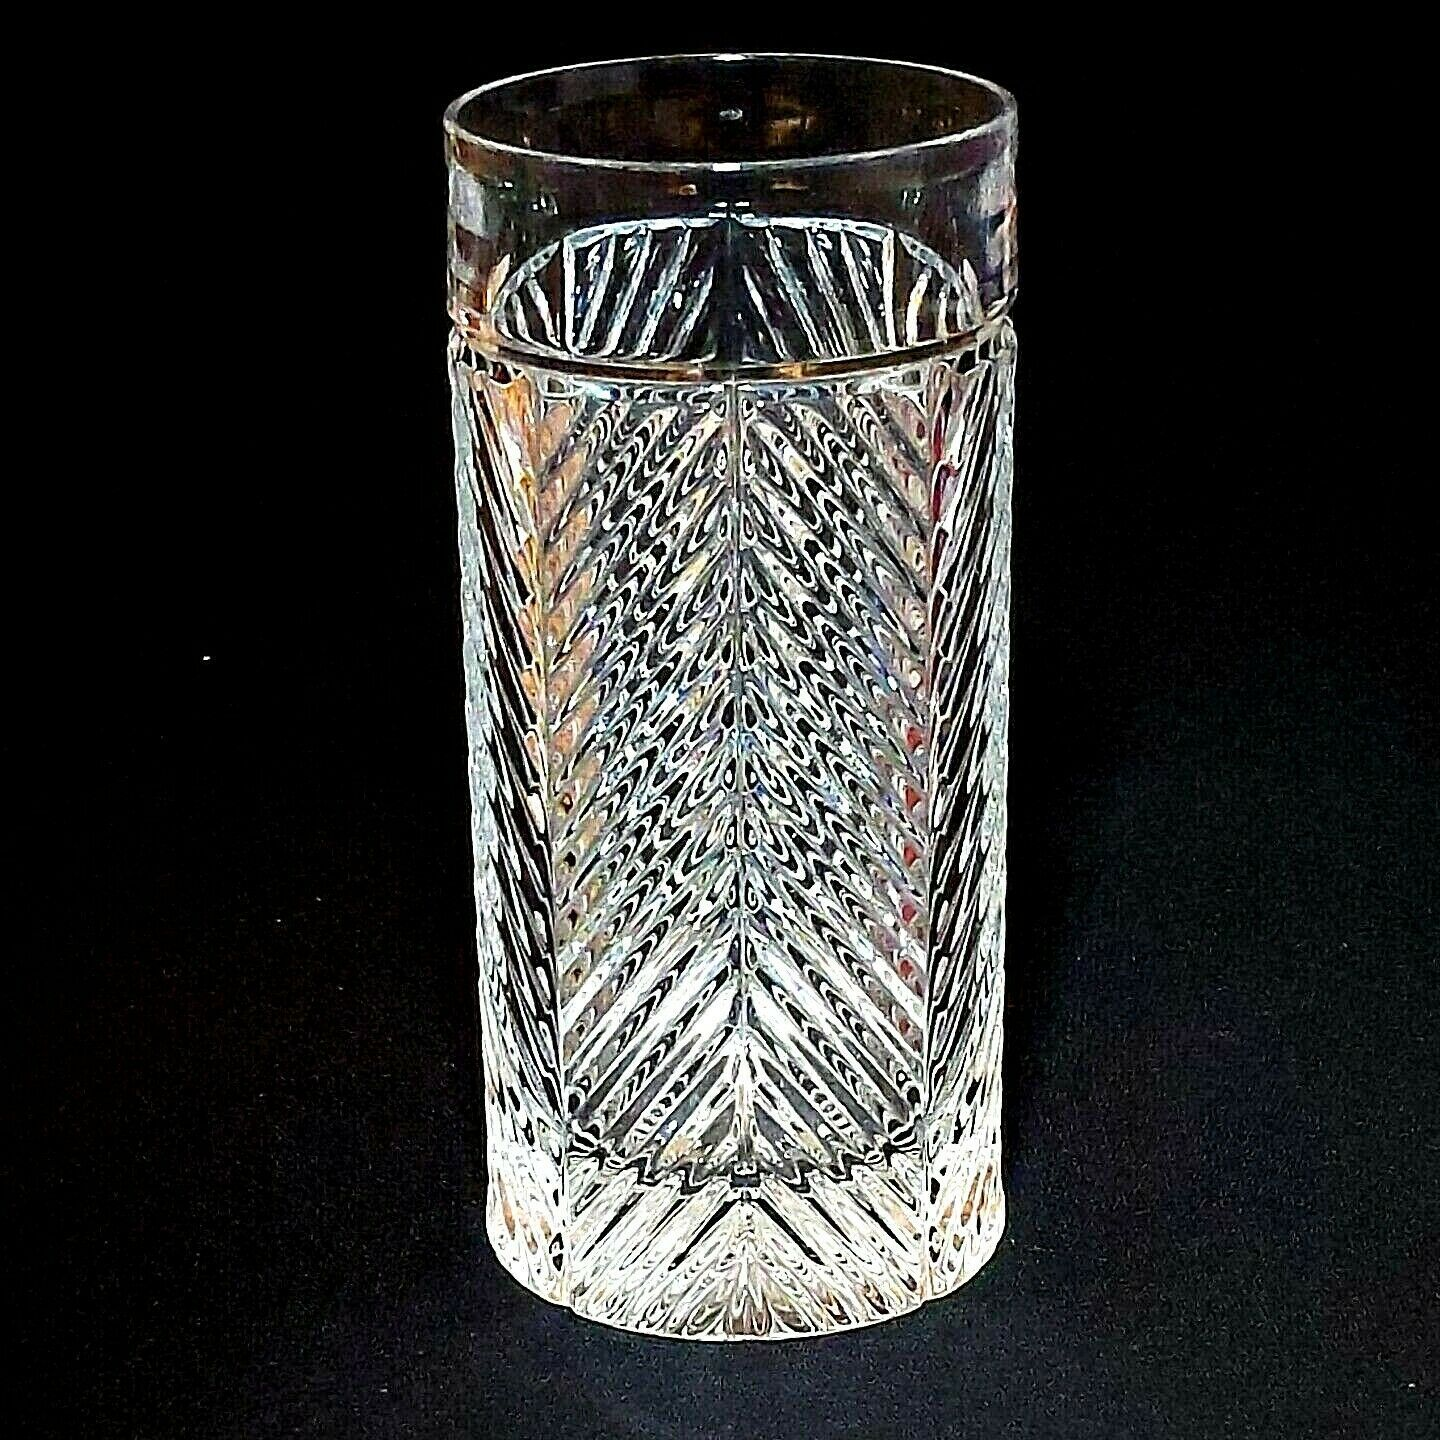 1 (One) RALPH LAUREN HERRINGBONE Lead Crystal Highball Glass-Signed